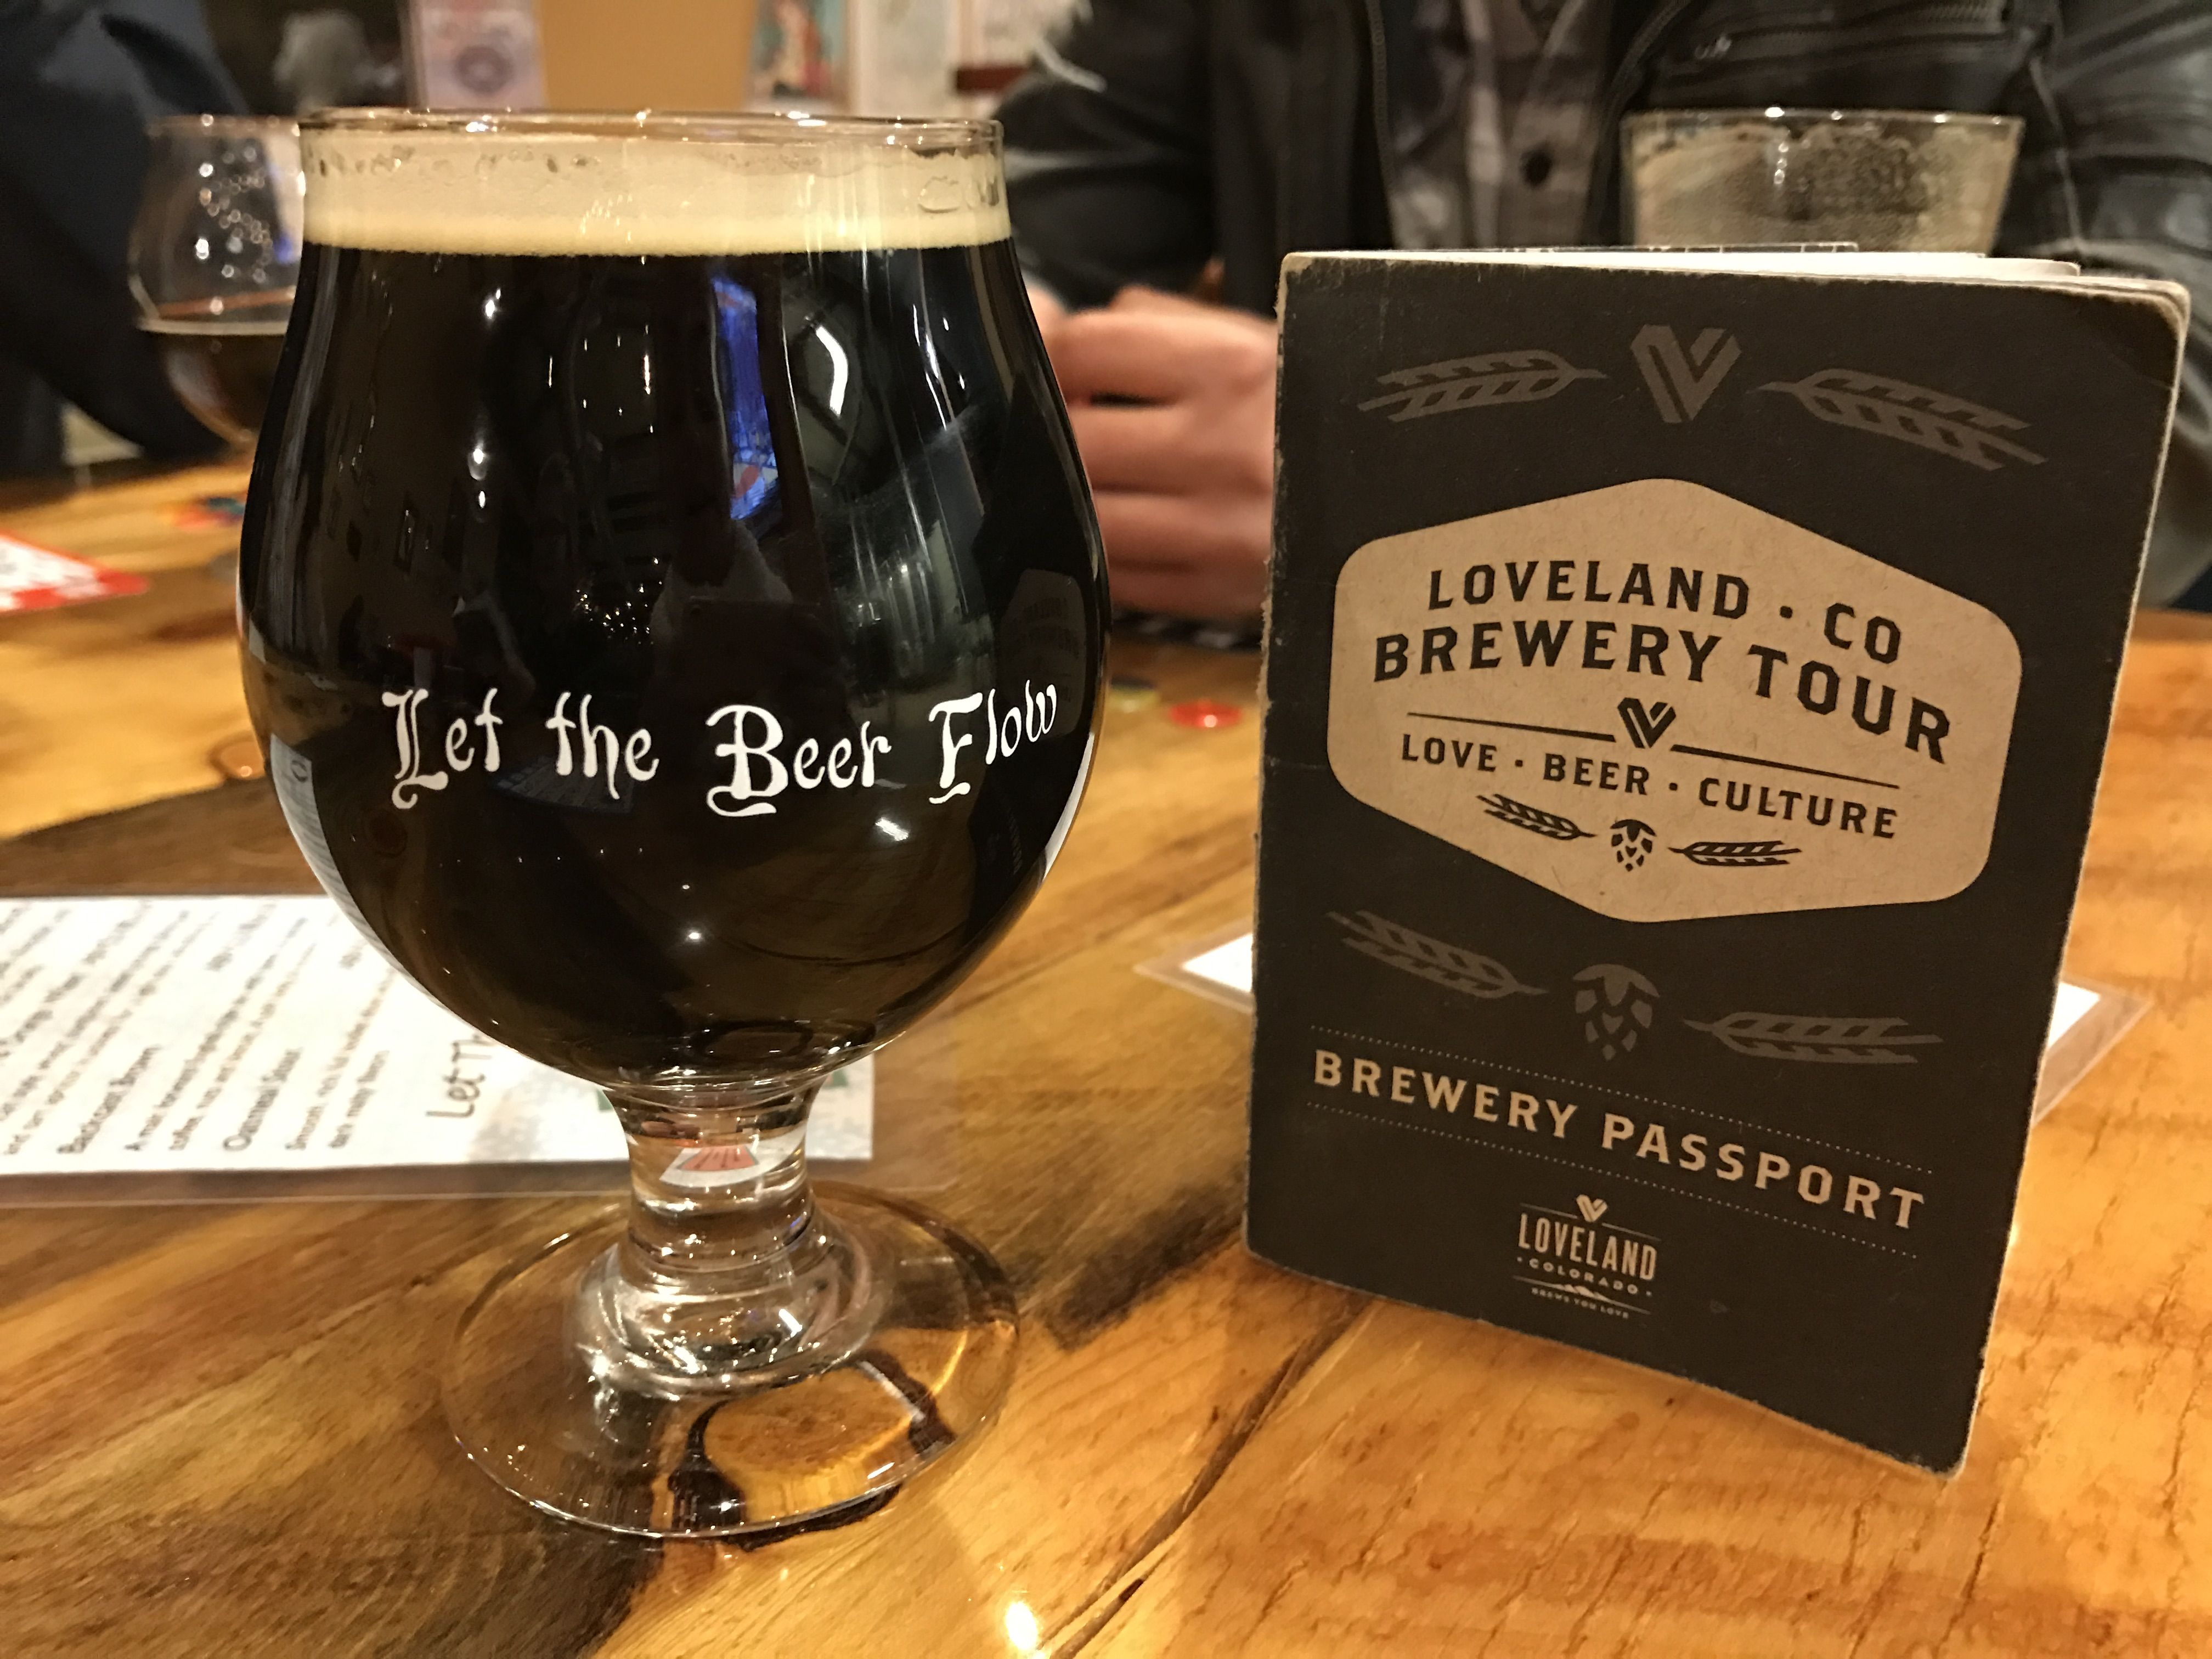 Let The Beer Flow With The Loveland Brewery Passport Program Brewery Guide Brewery Brewery Tours